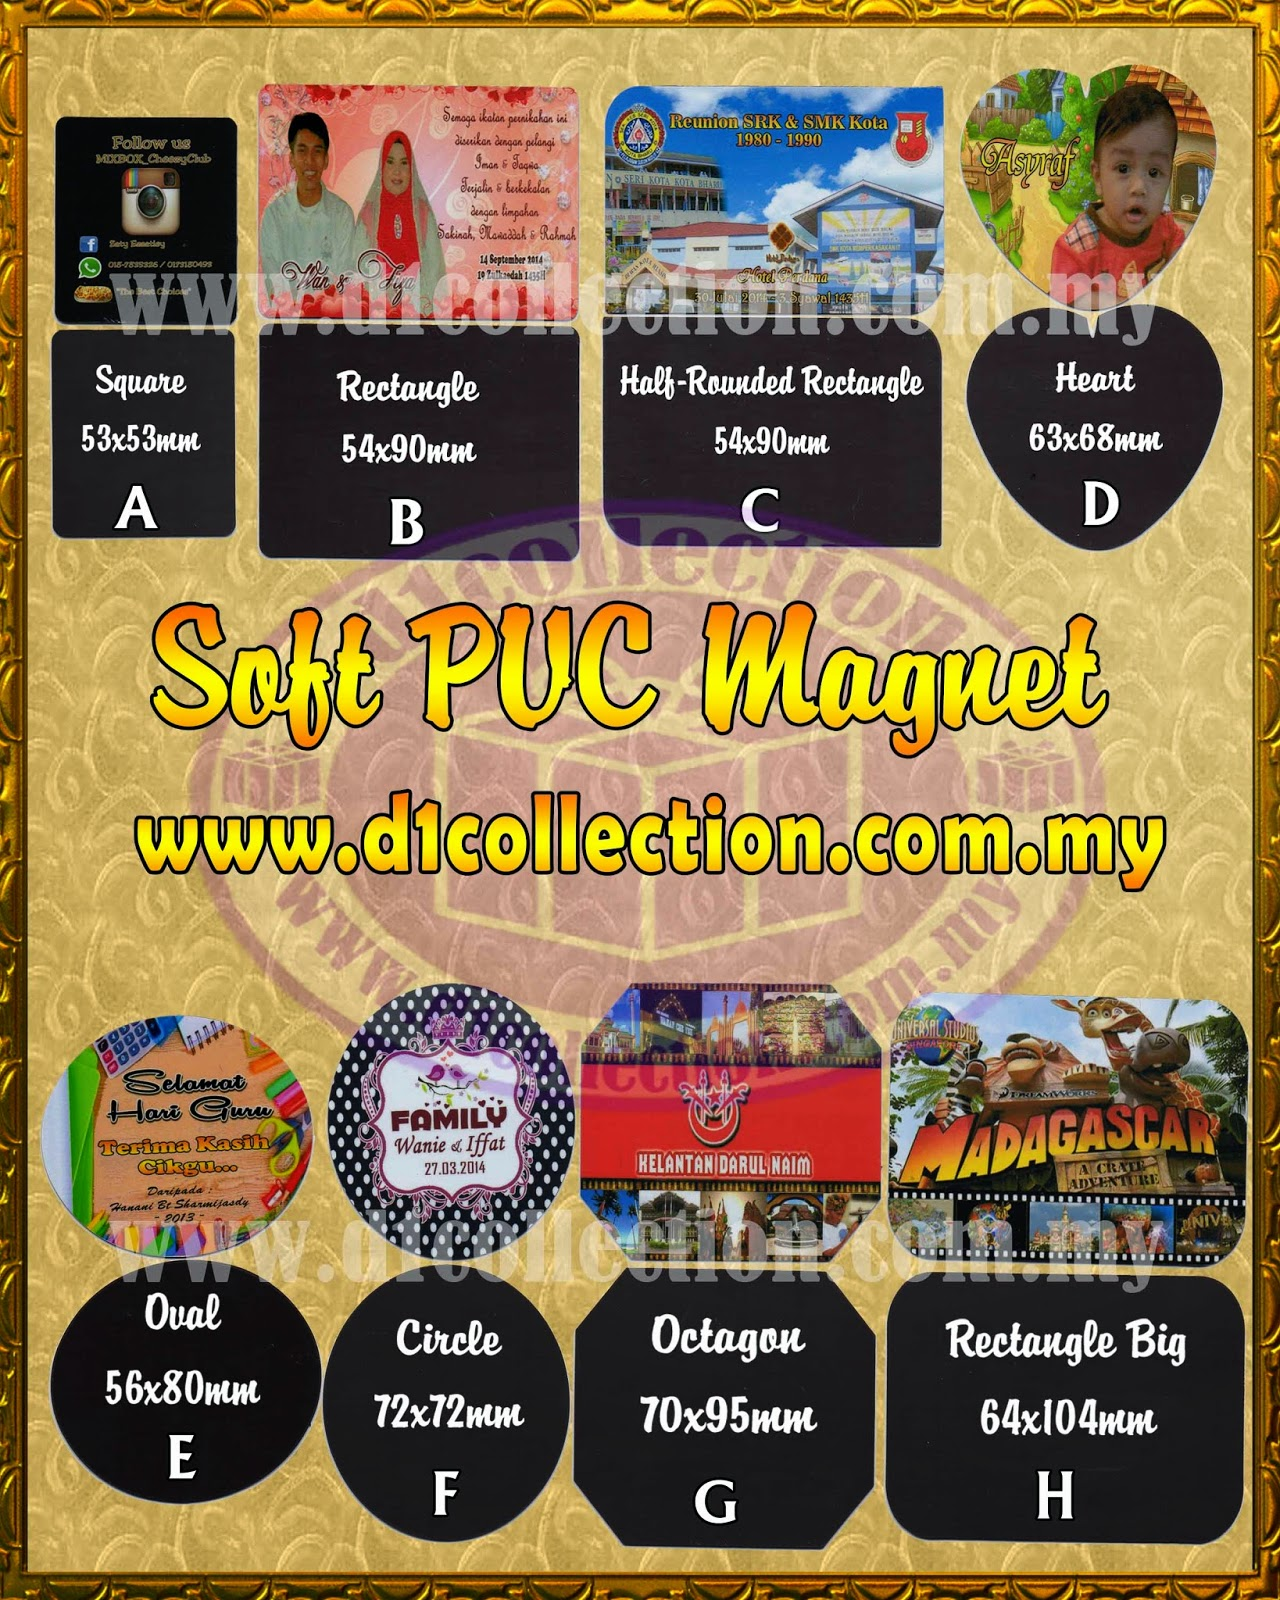 http://www.d1collection.com.my/search/label/Koleksi%20Magnet